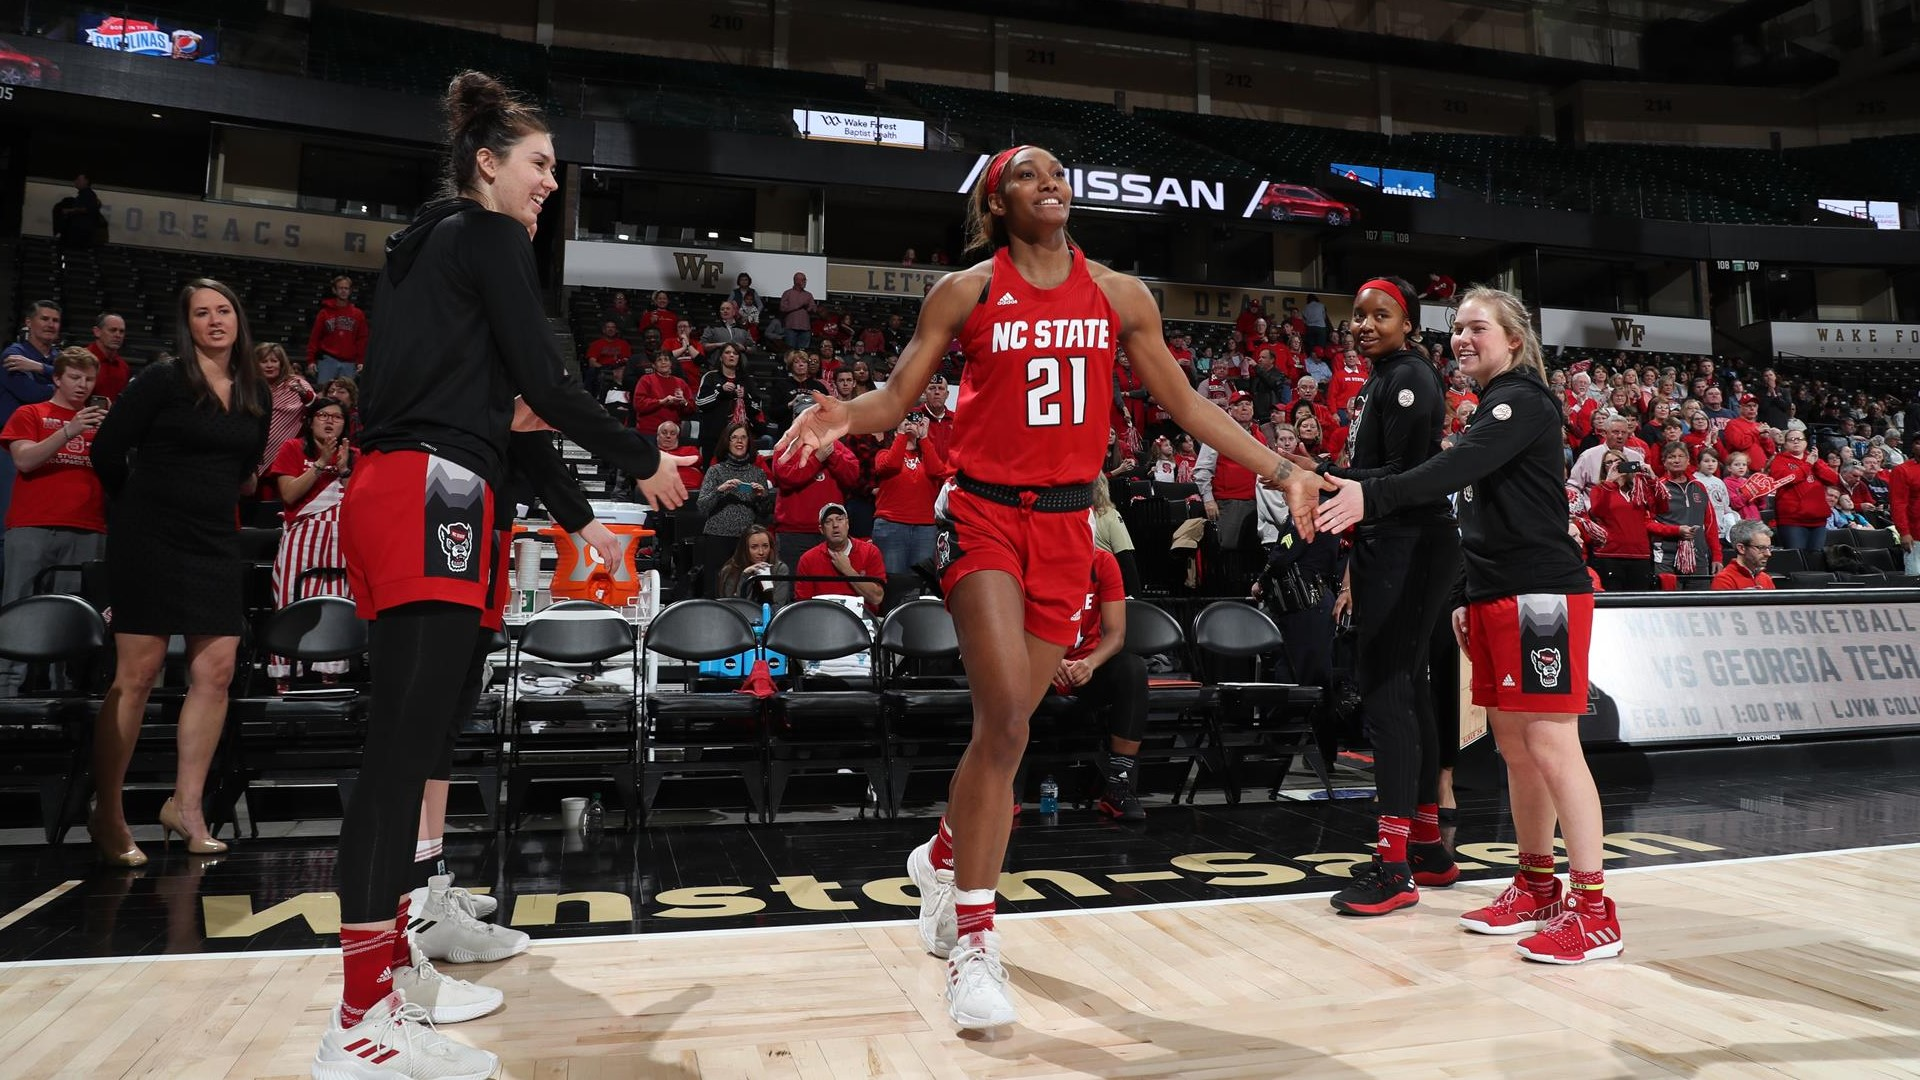 DD Rogers - 2018-19 - Women's Basketball - NC State